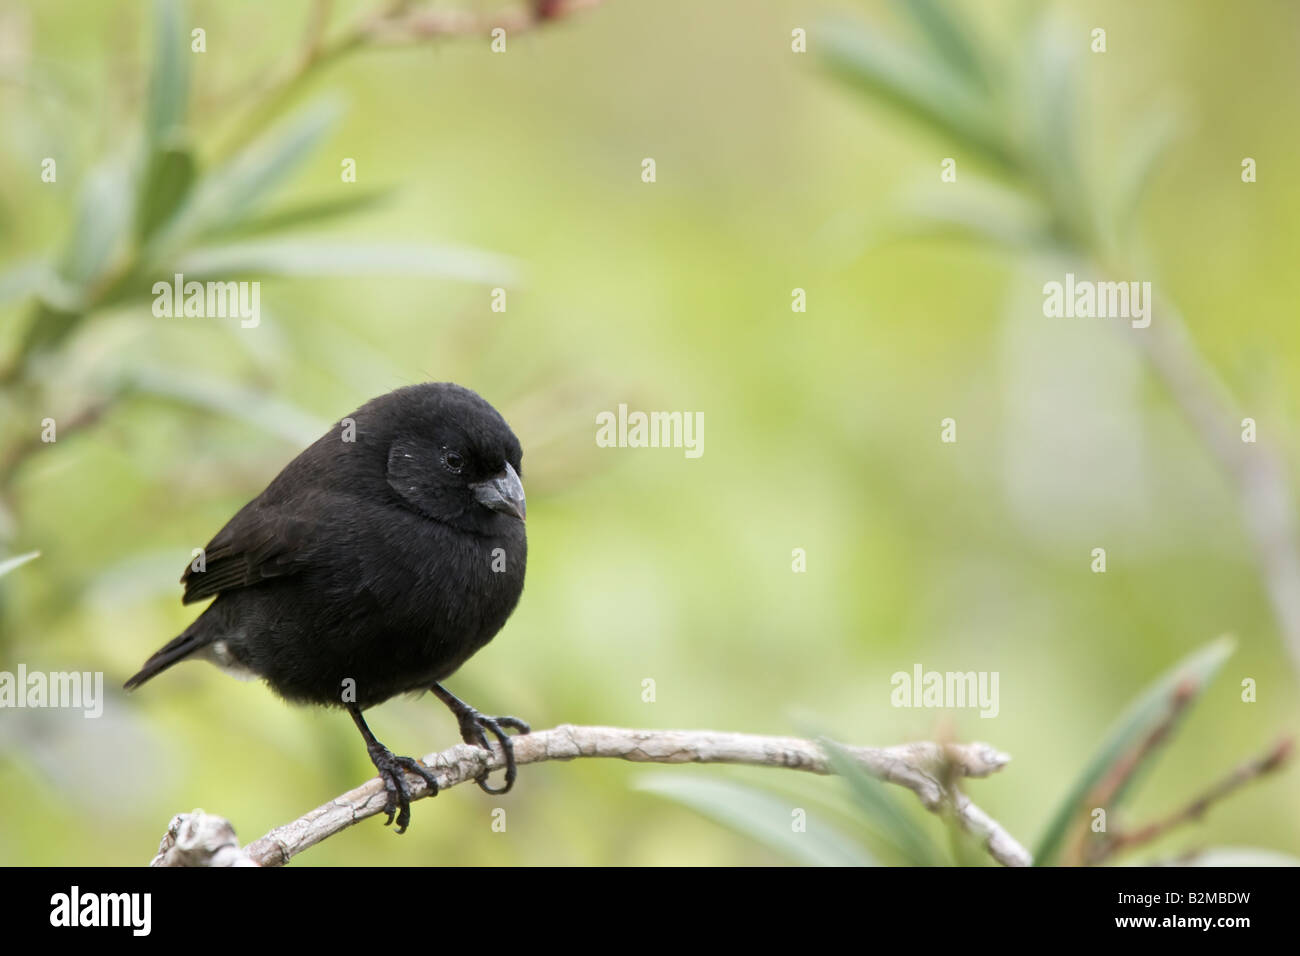 Darwin's Finches Small Ground Finch - Stock Image